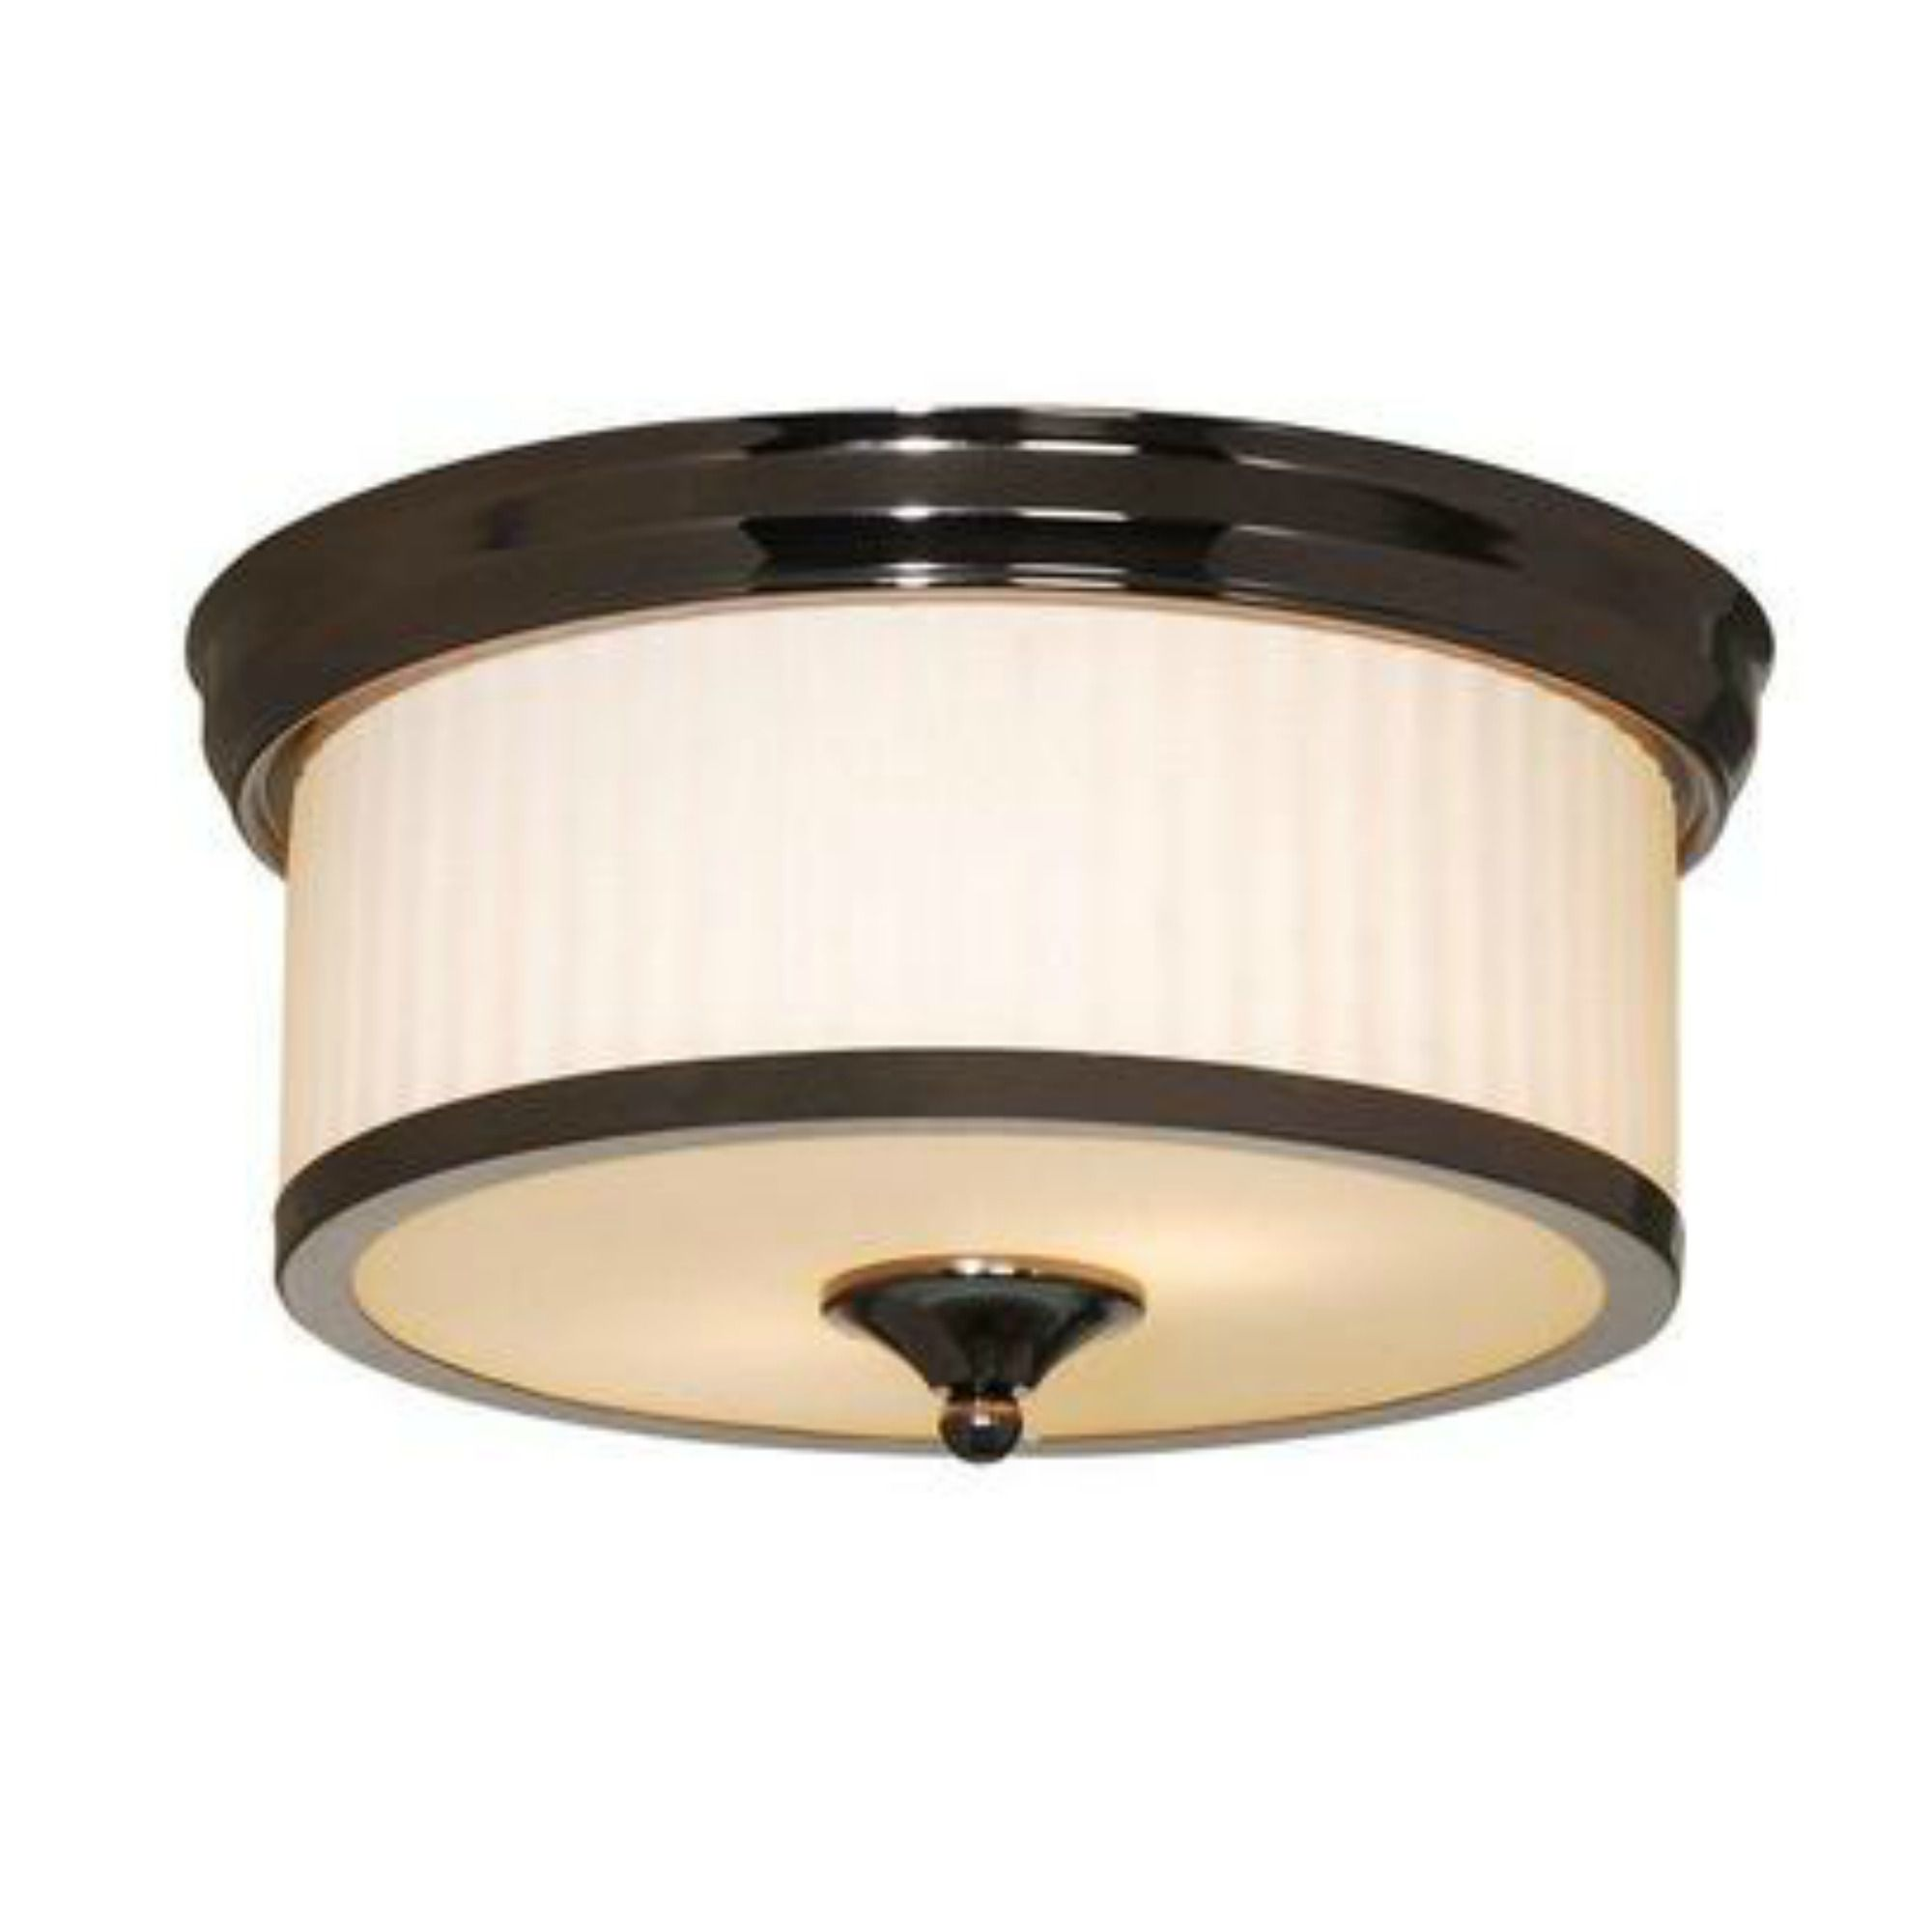 close fixtures light smsender for ceiling co tulum to